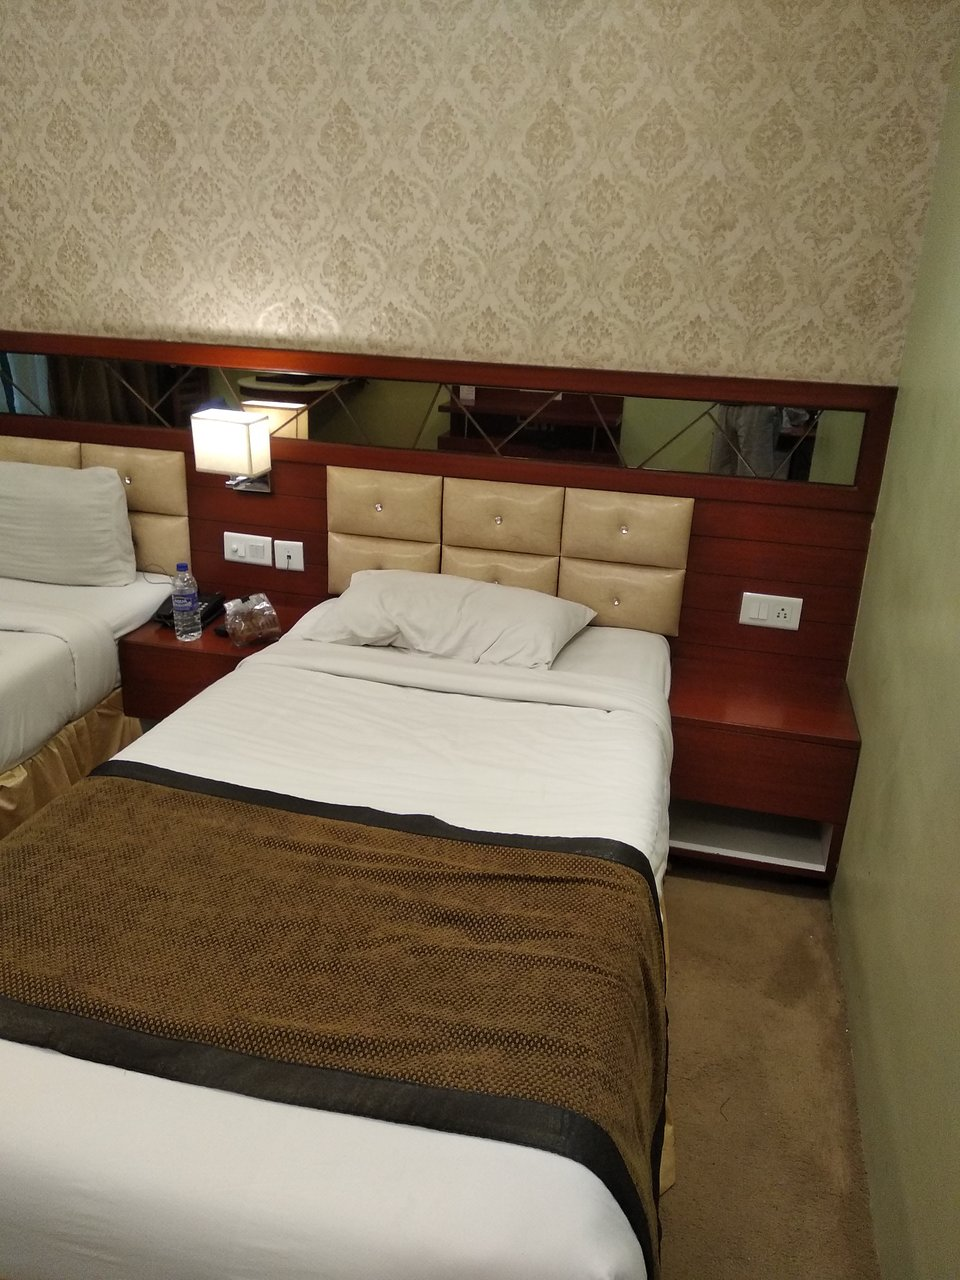 THE GRAND EMPIRE (Patna, Bihar) - Hotel Reviews, Photos